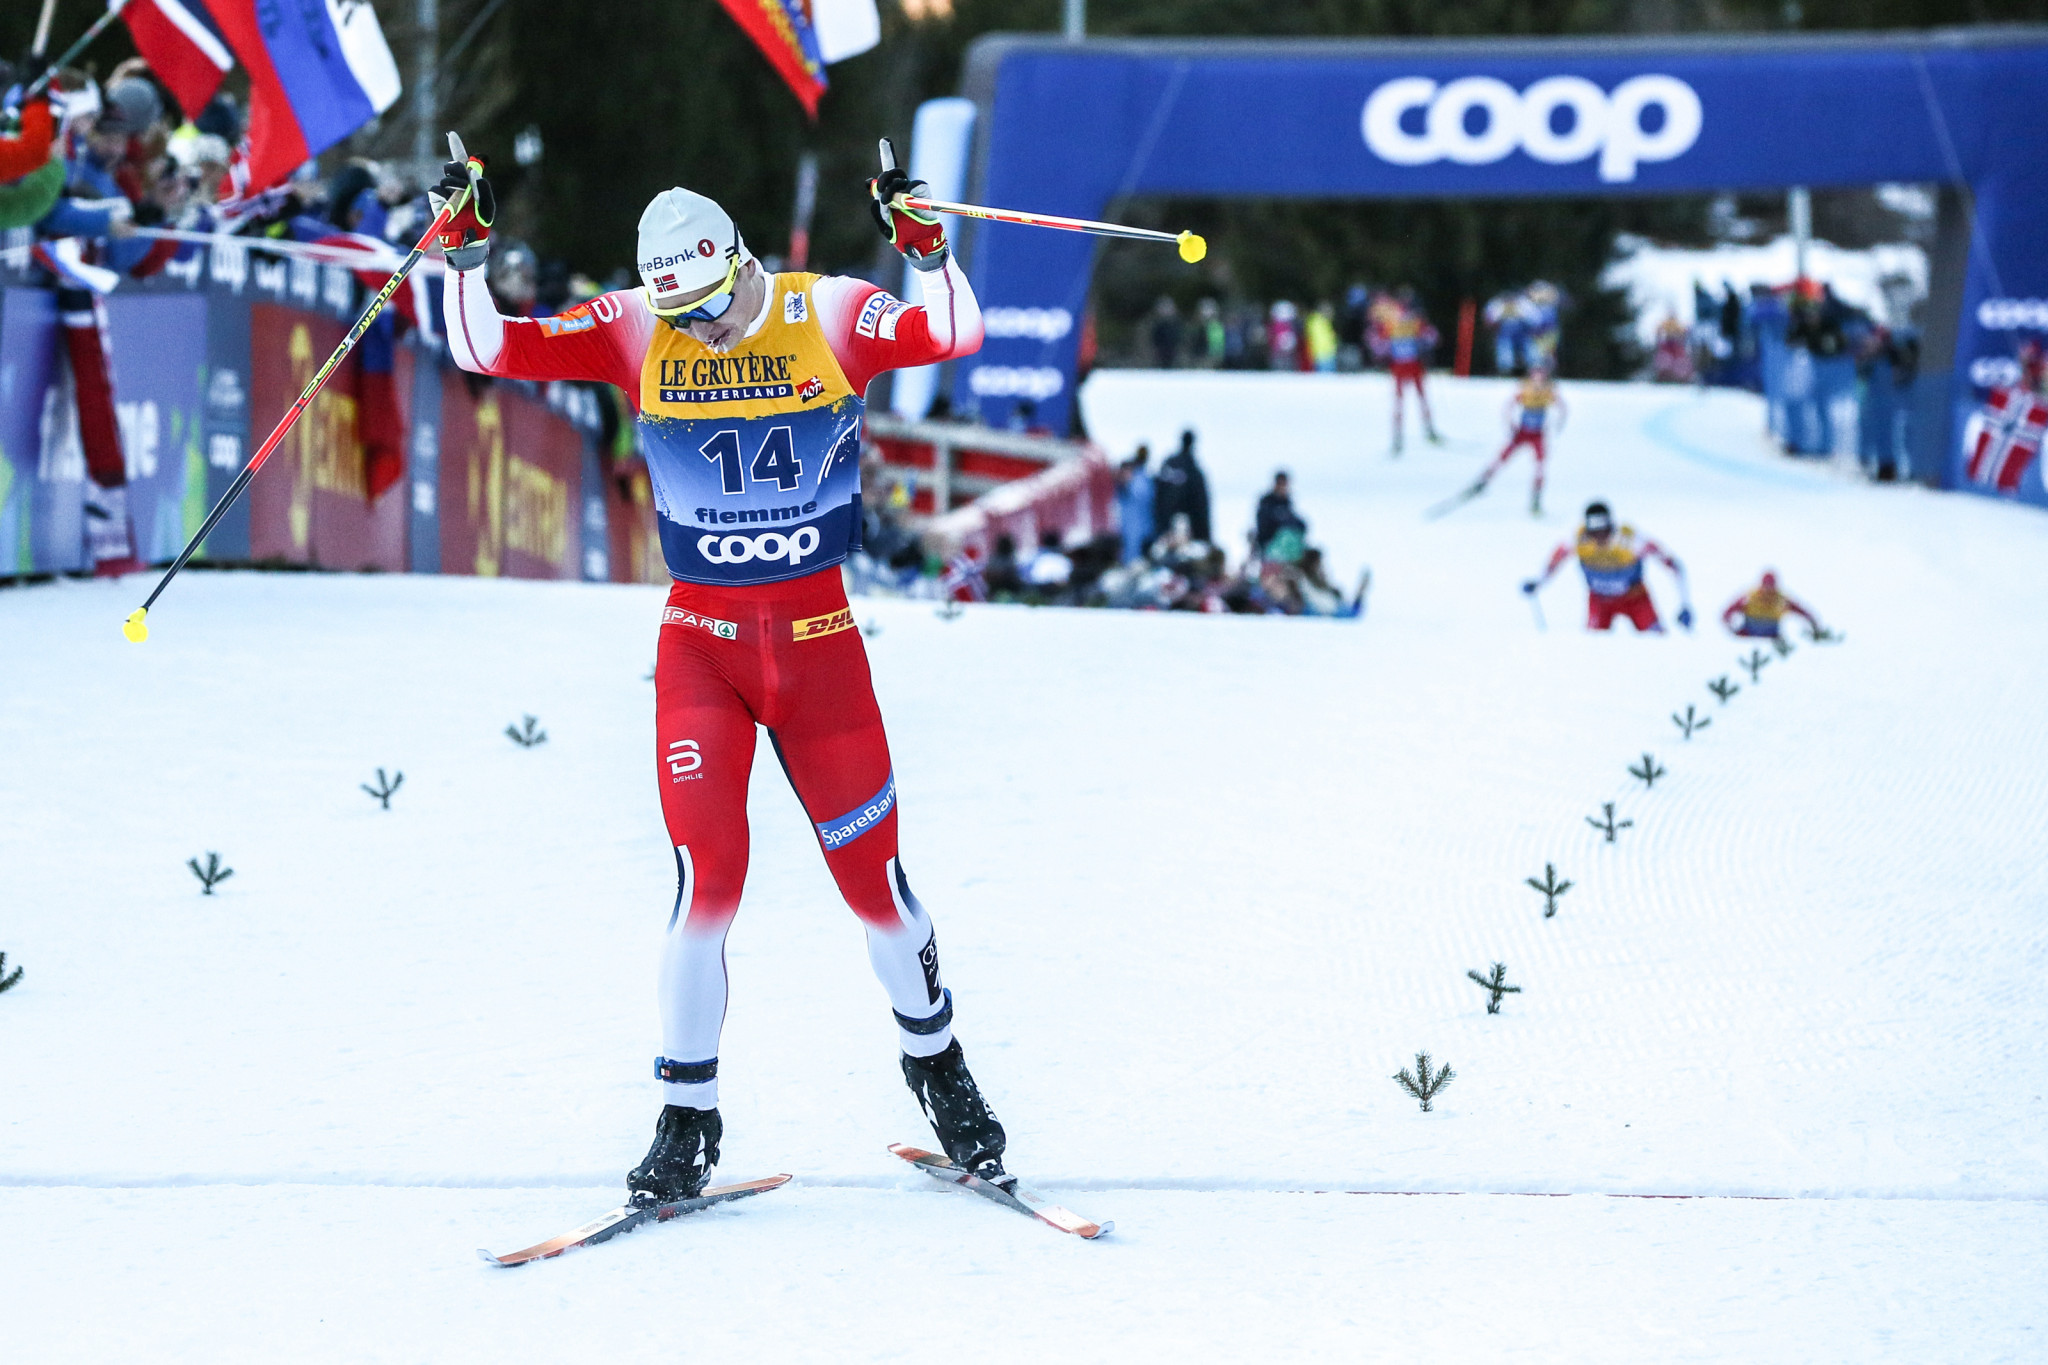 A request to shorten the Tour de Ski was rejected by the FIS ©Getty Images